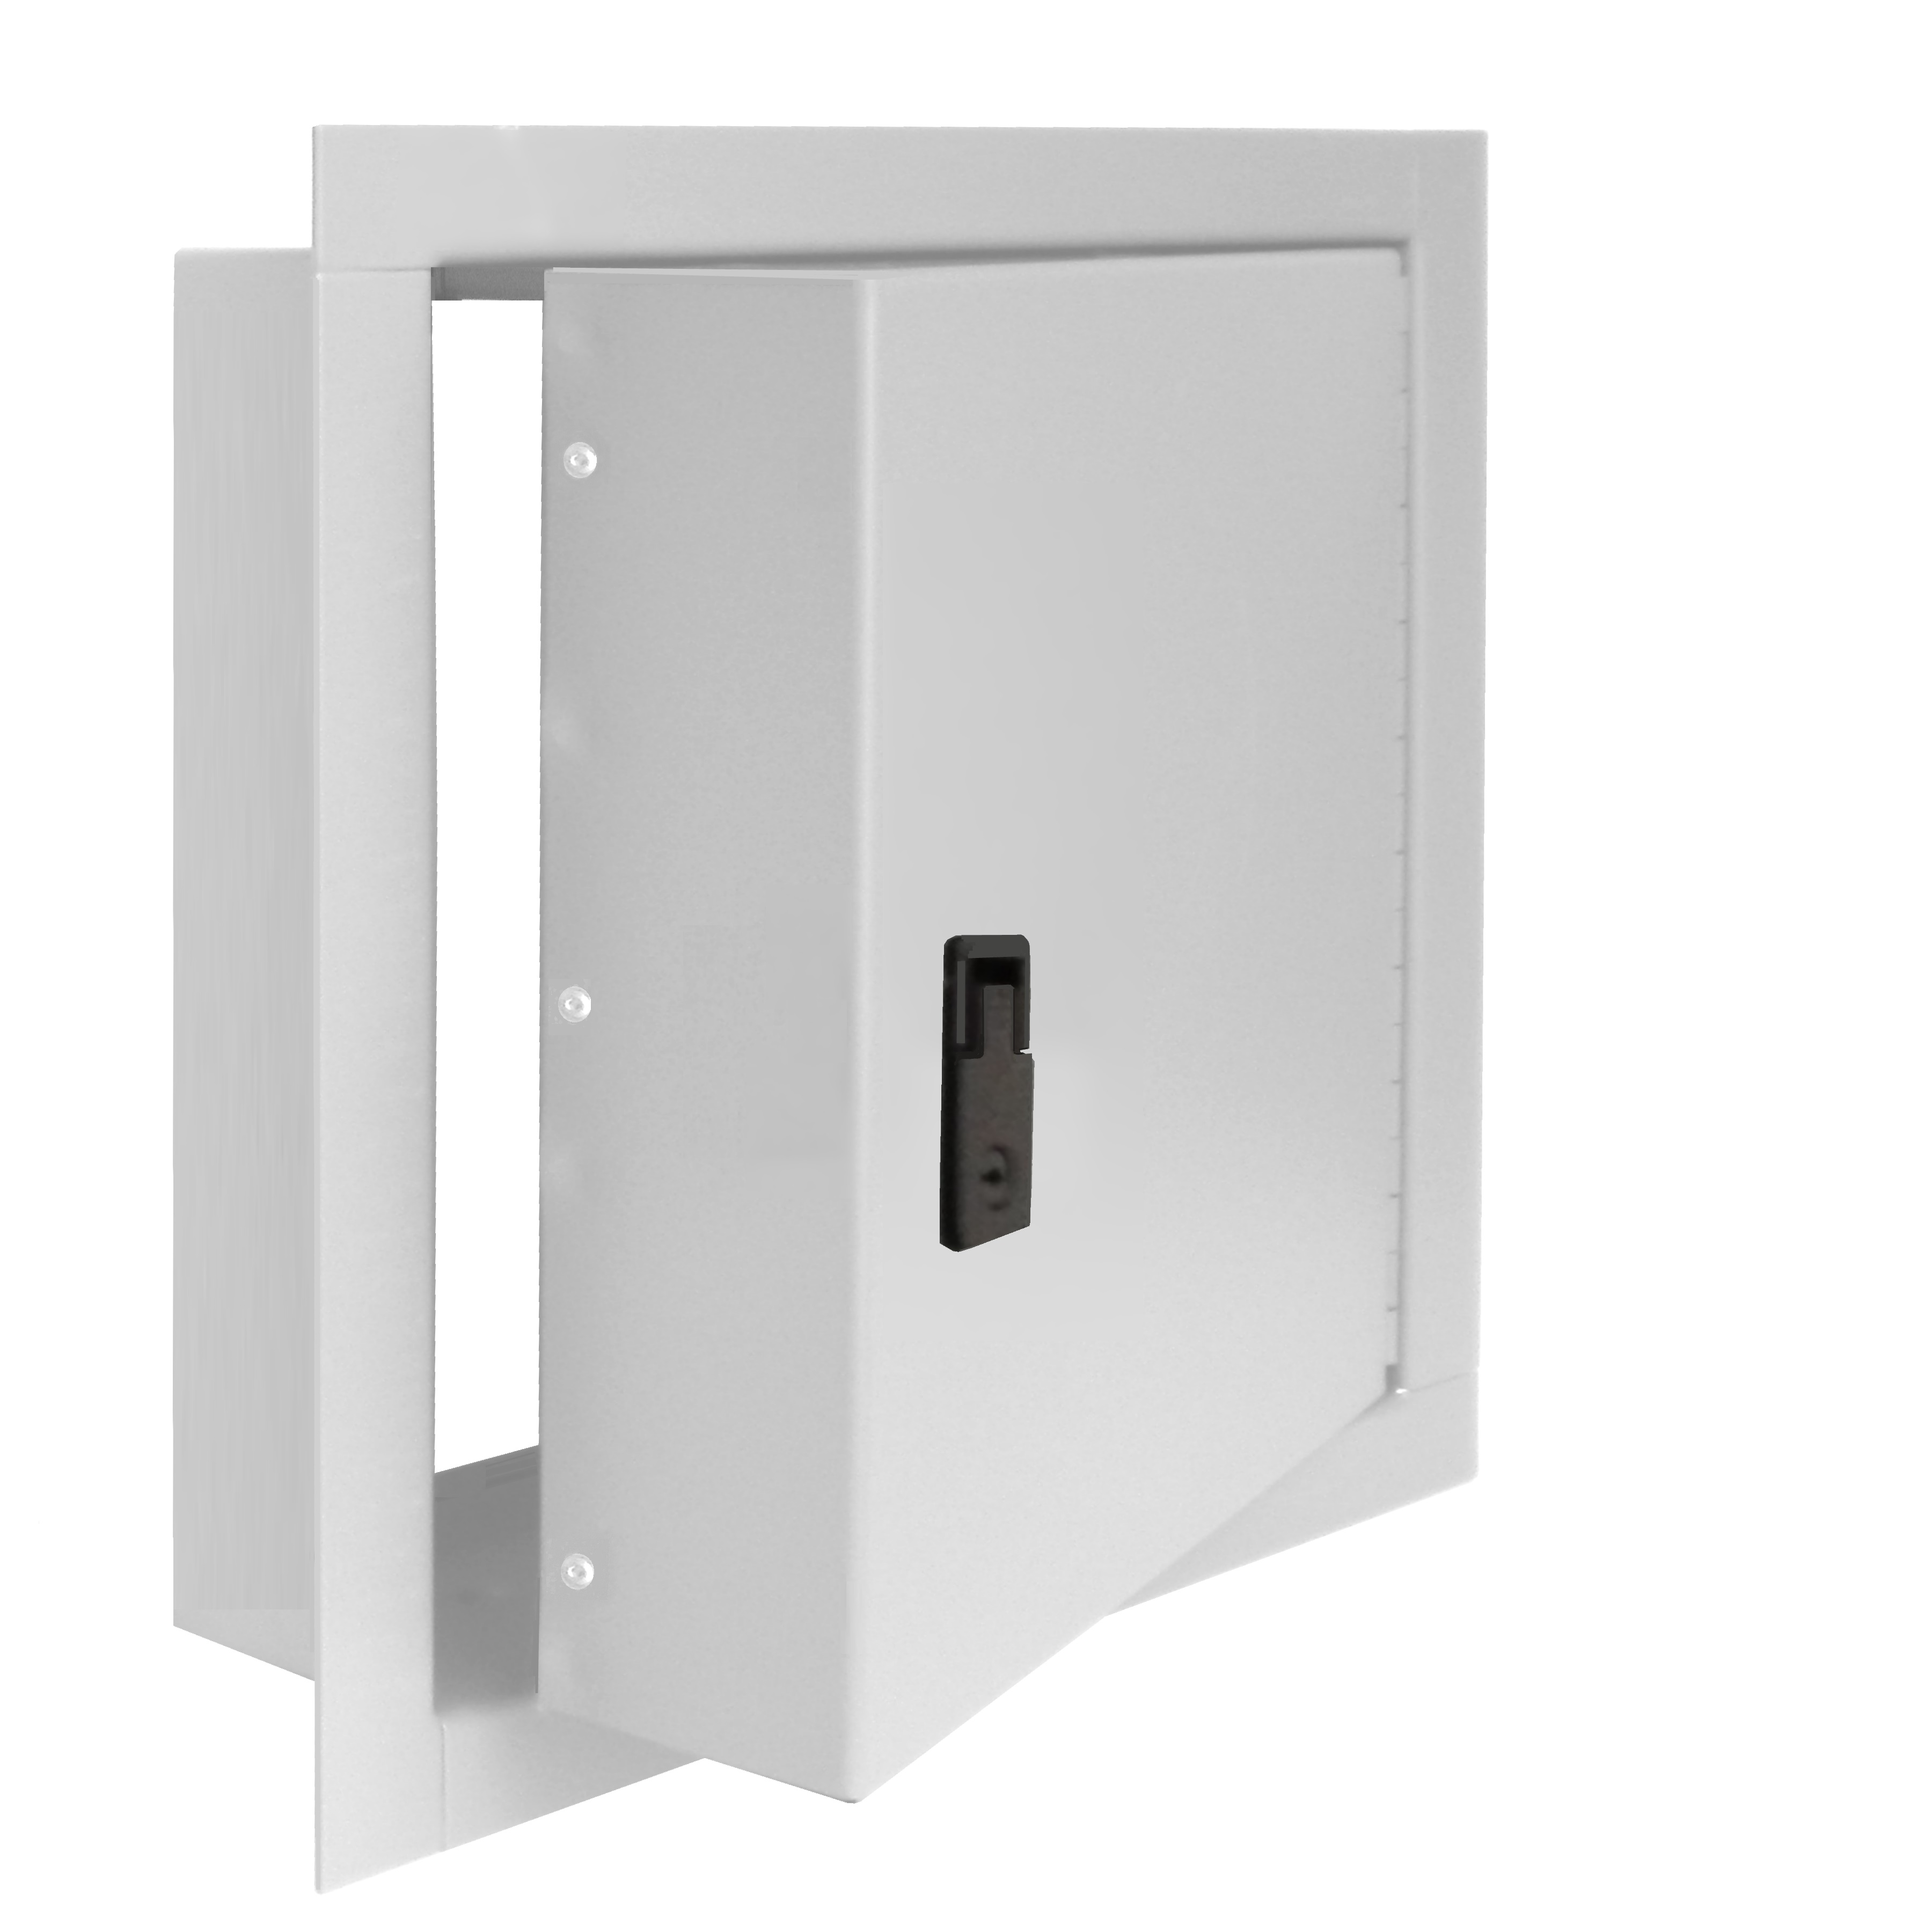 Access Hatches For Walls : Stc series rated flush access panels for walls